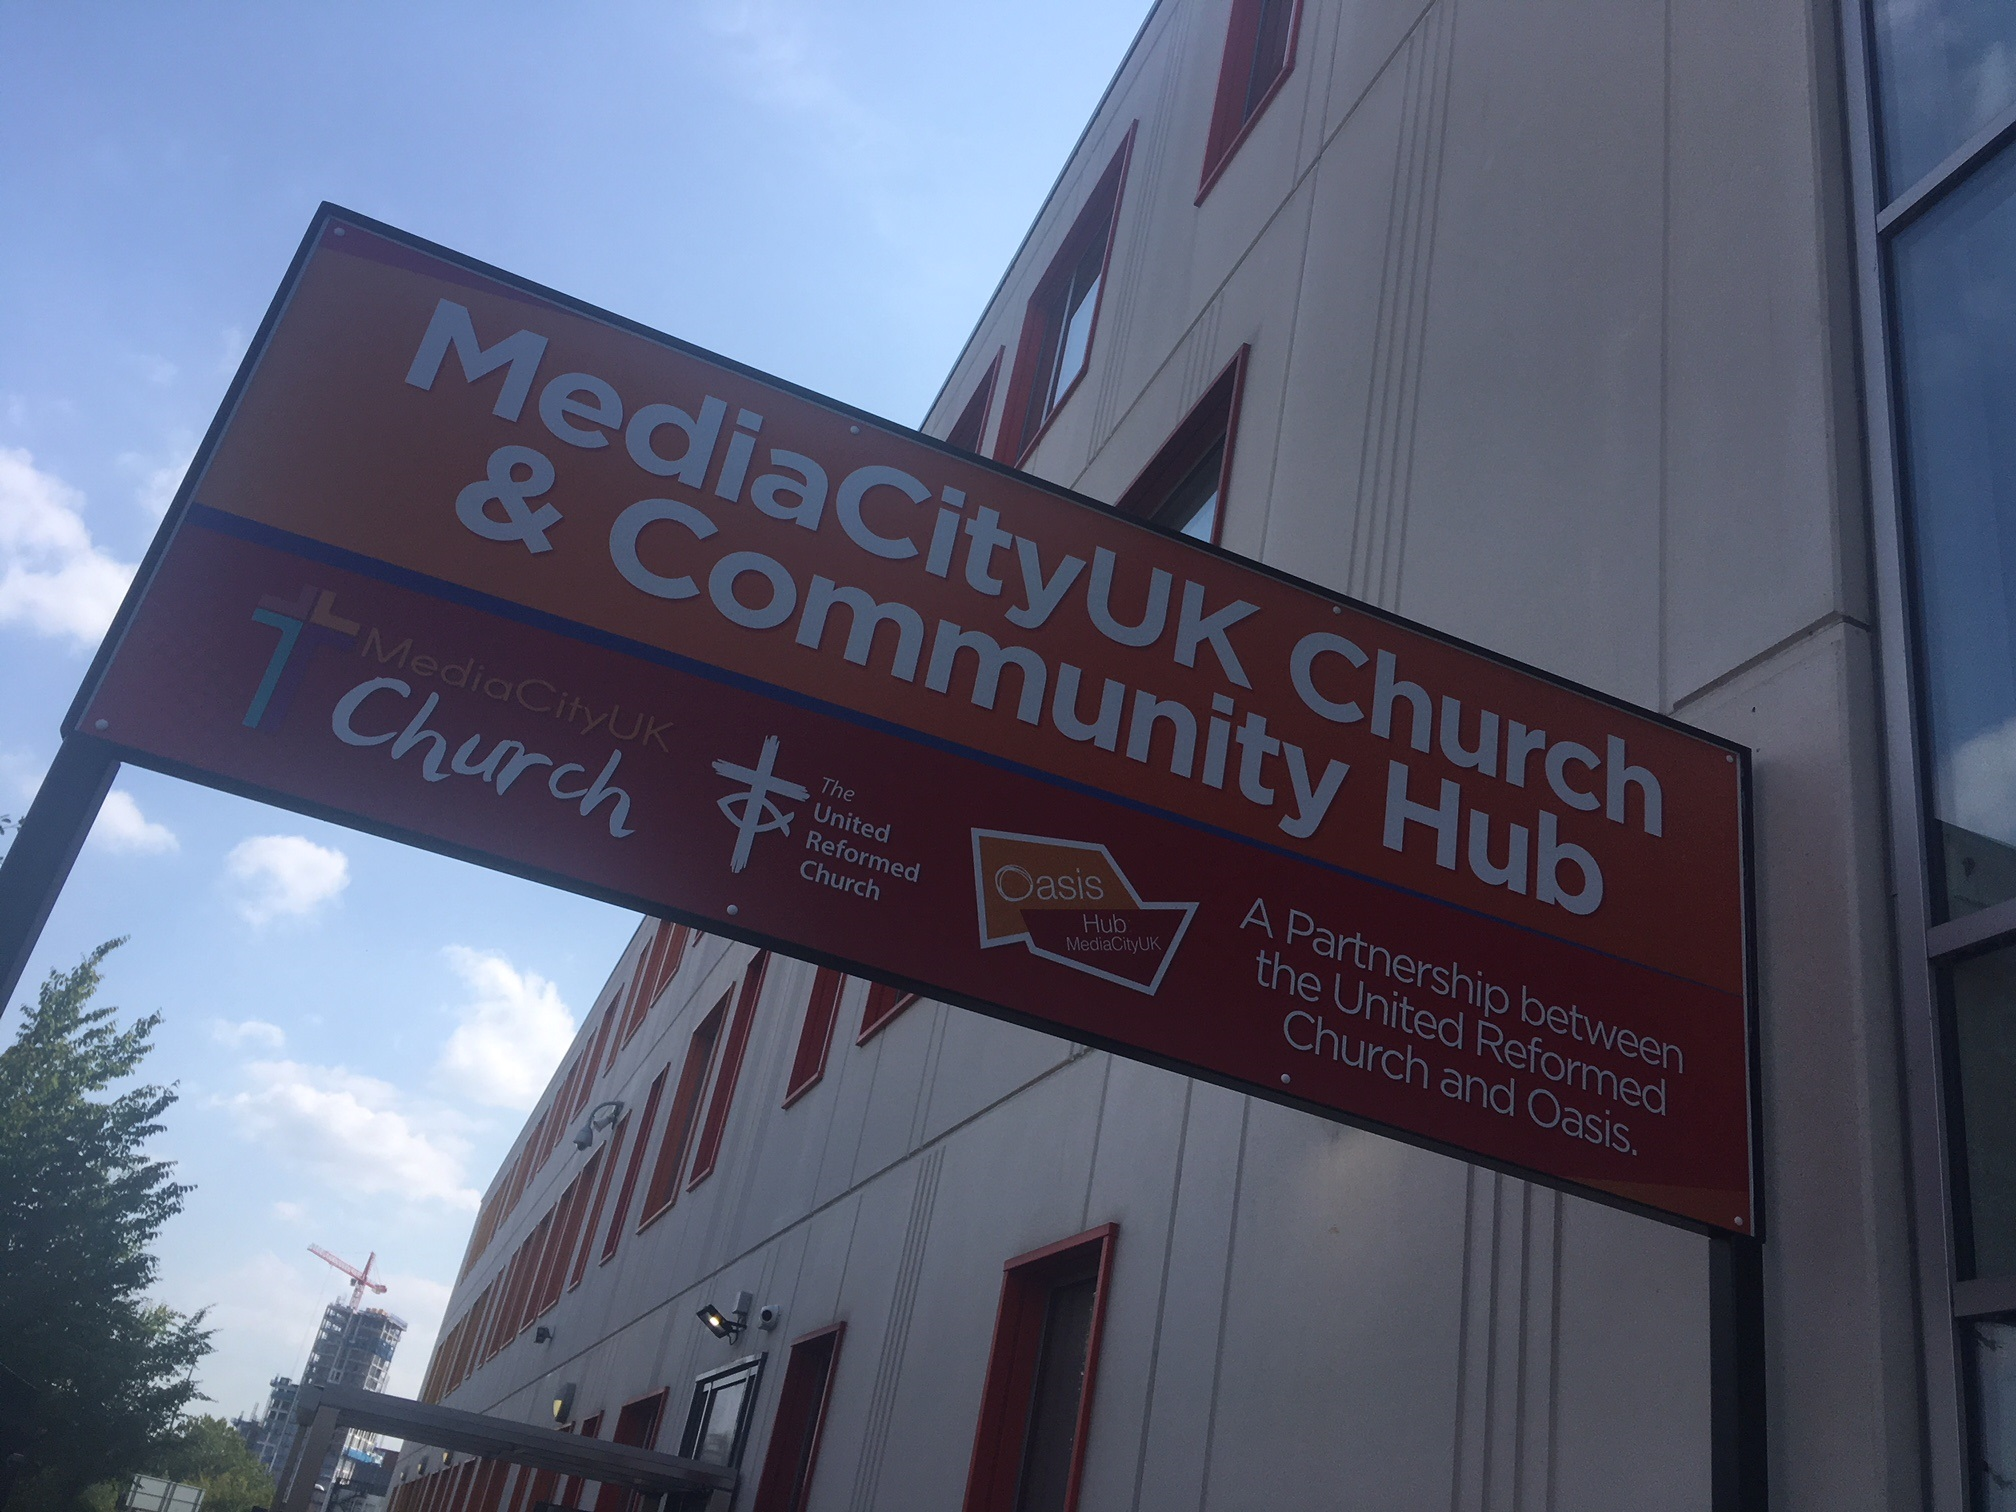 Celebrations as new community centre and church opens in Salford